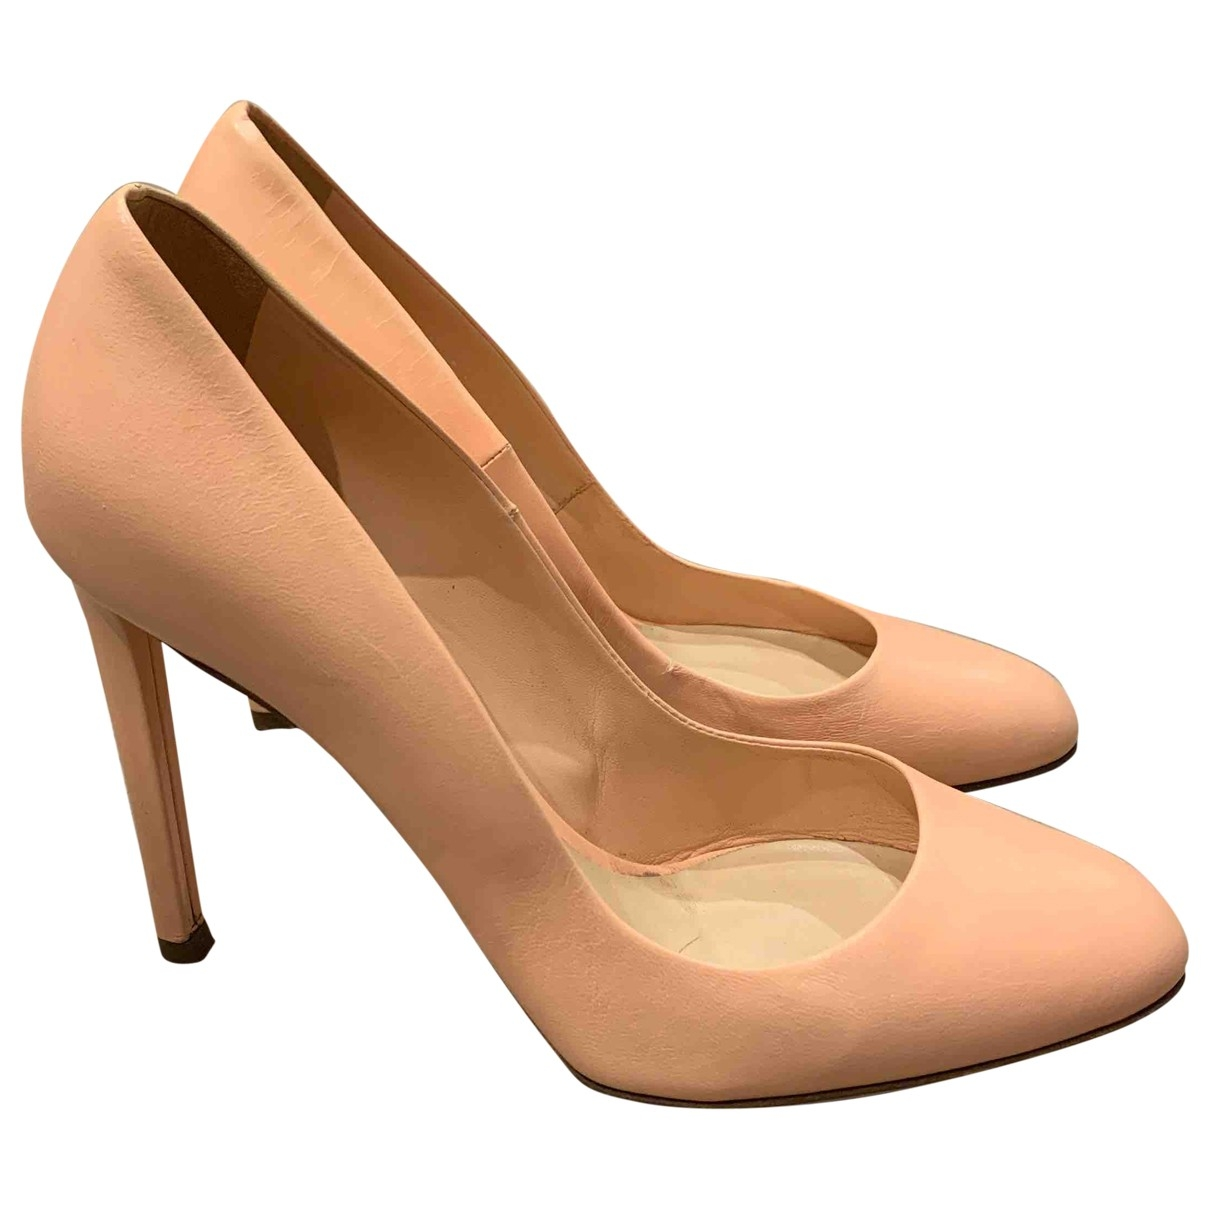 Dior \N Pink Leather Heels for Women 37 EU